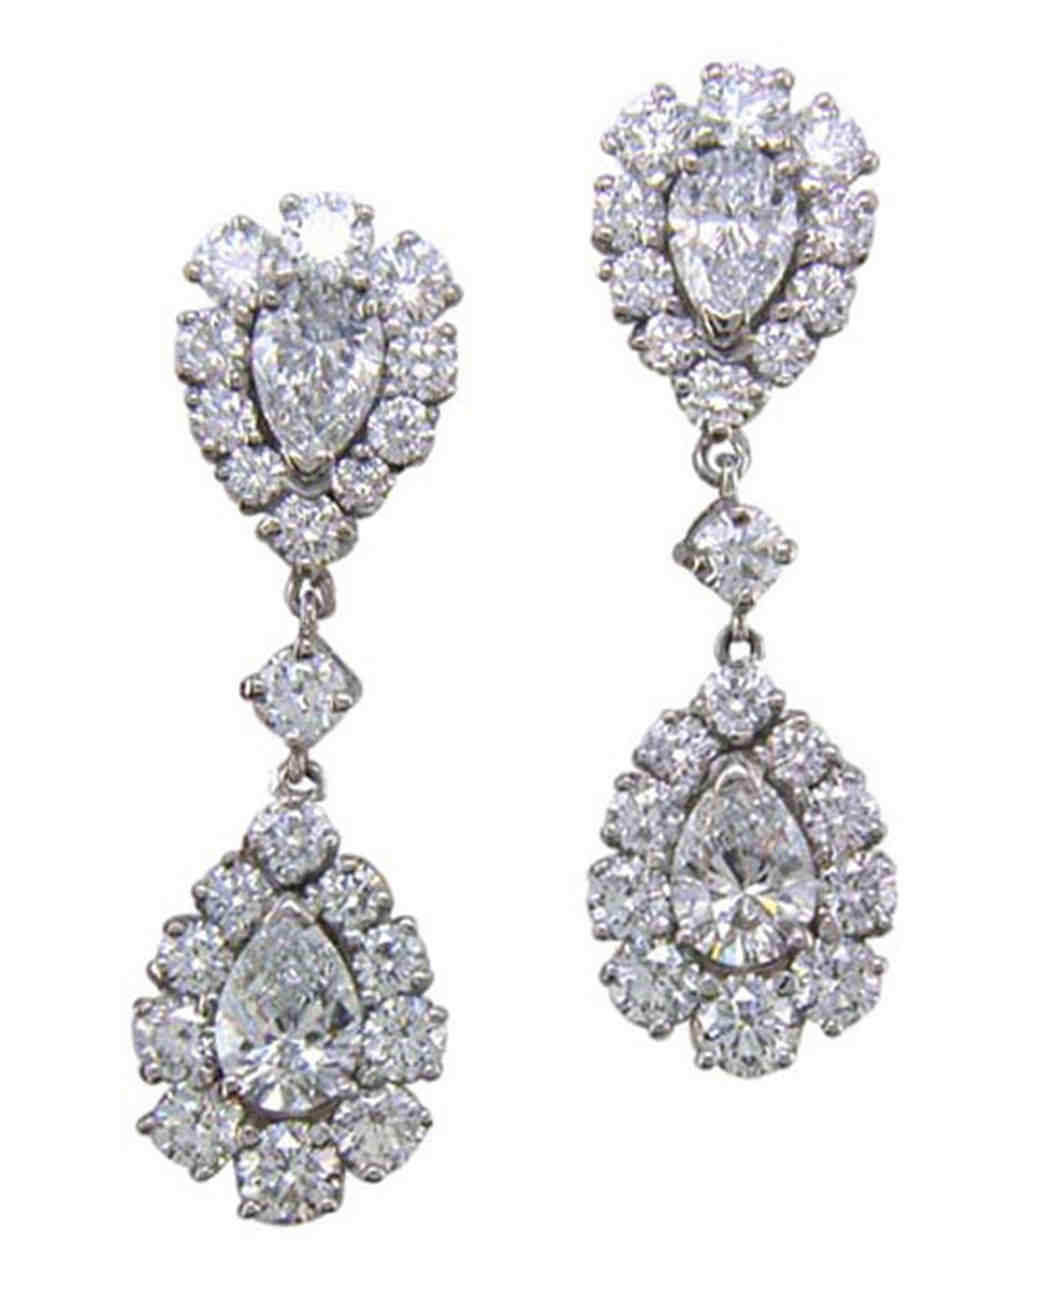 heyman_ohb_705348_xx287_plat_dia_earrings.jpg